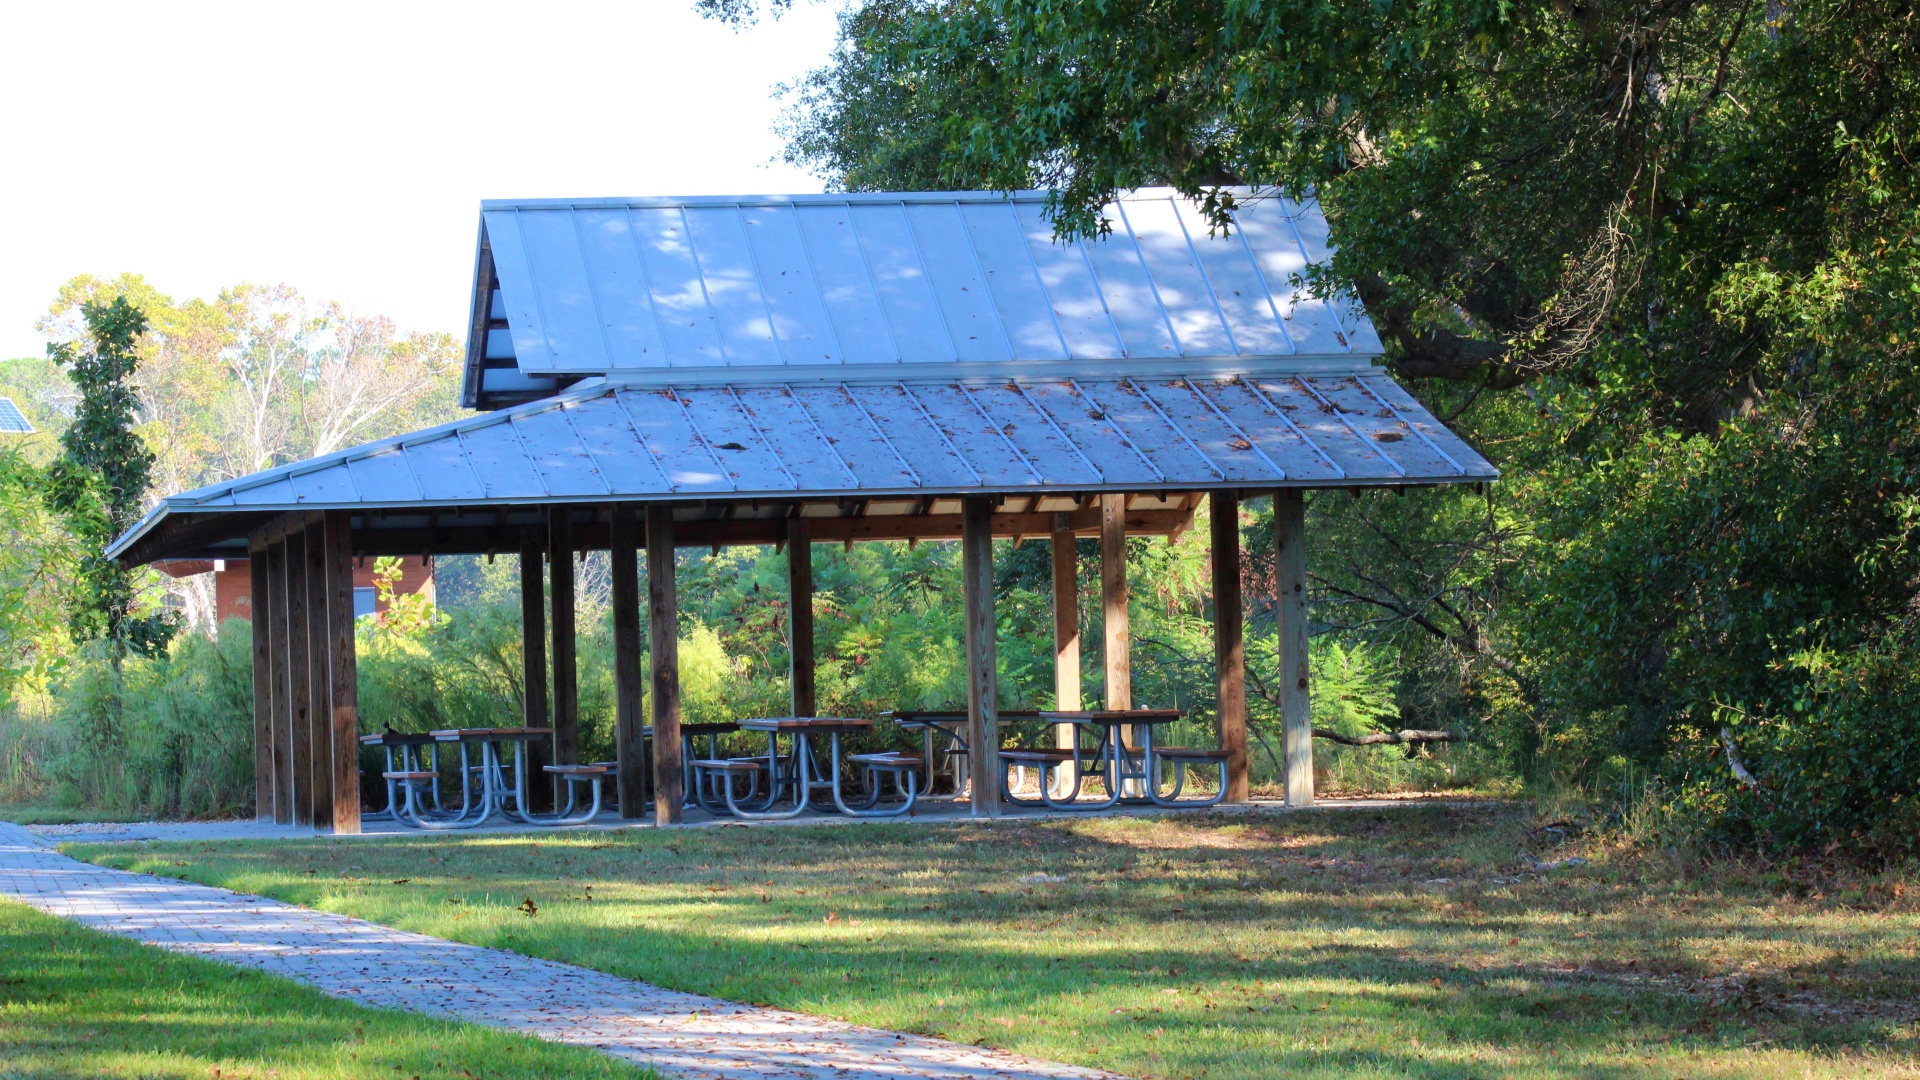 A side shot of the outdoor shelter with six picnic tables at Horseshoe Farm Nature Preserve